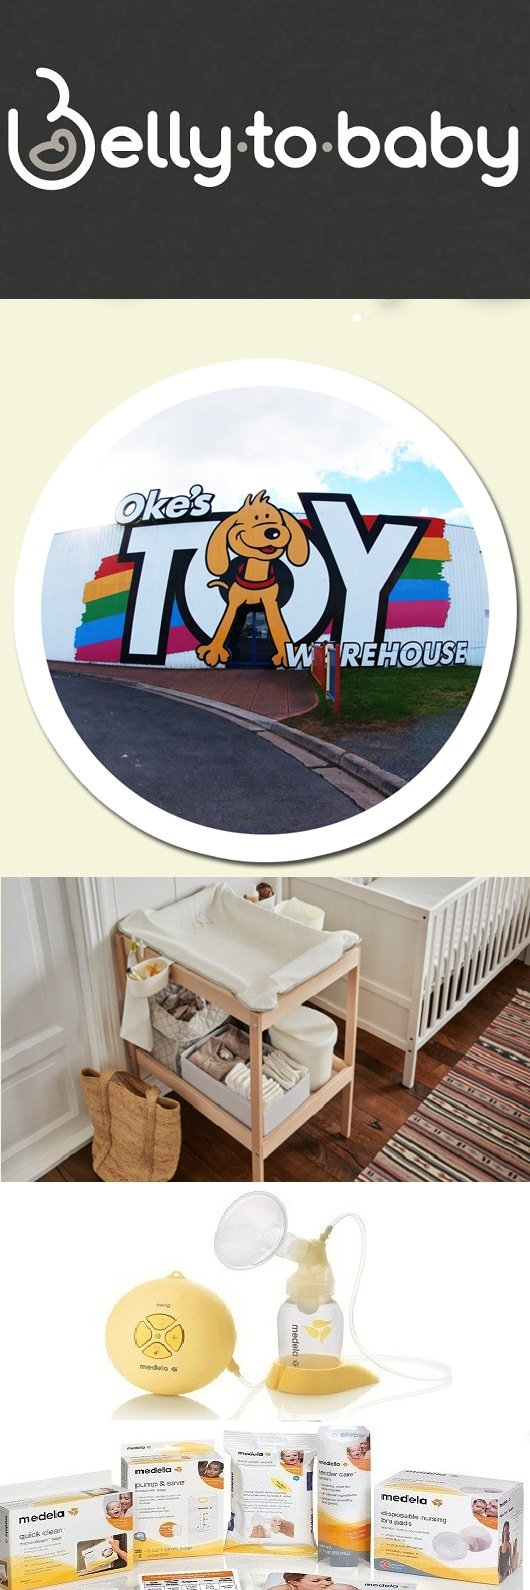 Belly To Baby Baby Prams Furniture Accessories Lorraine St